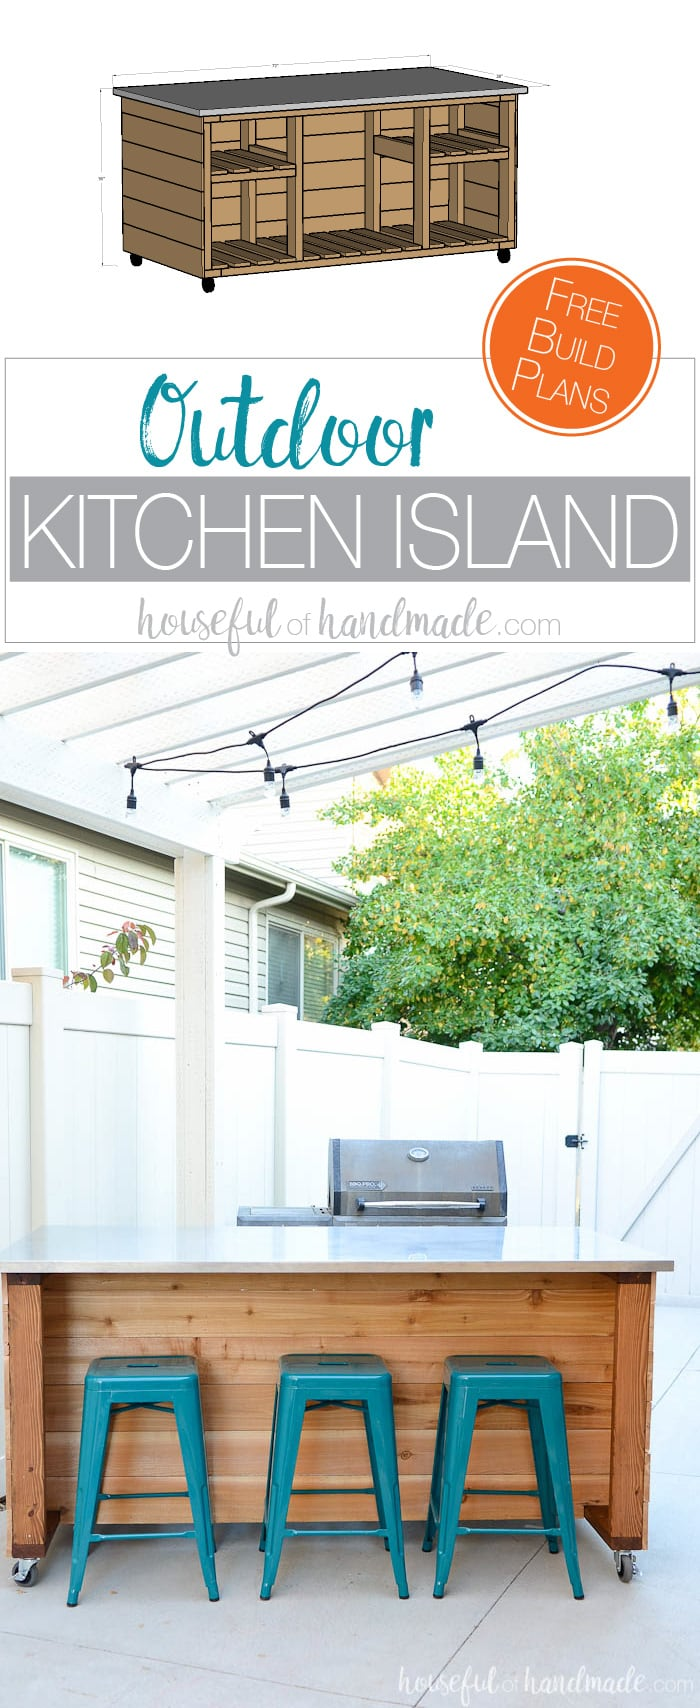 Create The Perfect Outdoor Kitchen Area With These Outdoor Kitchen Island  Build Plans. This Portable